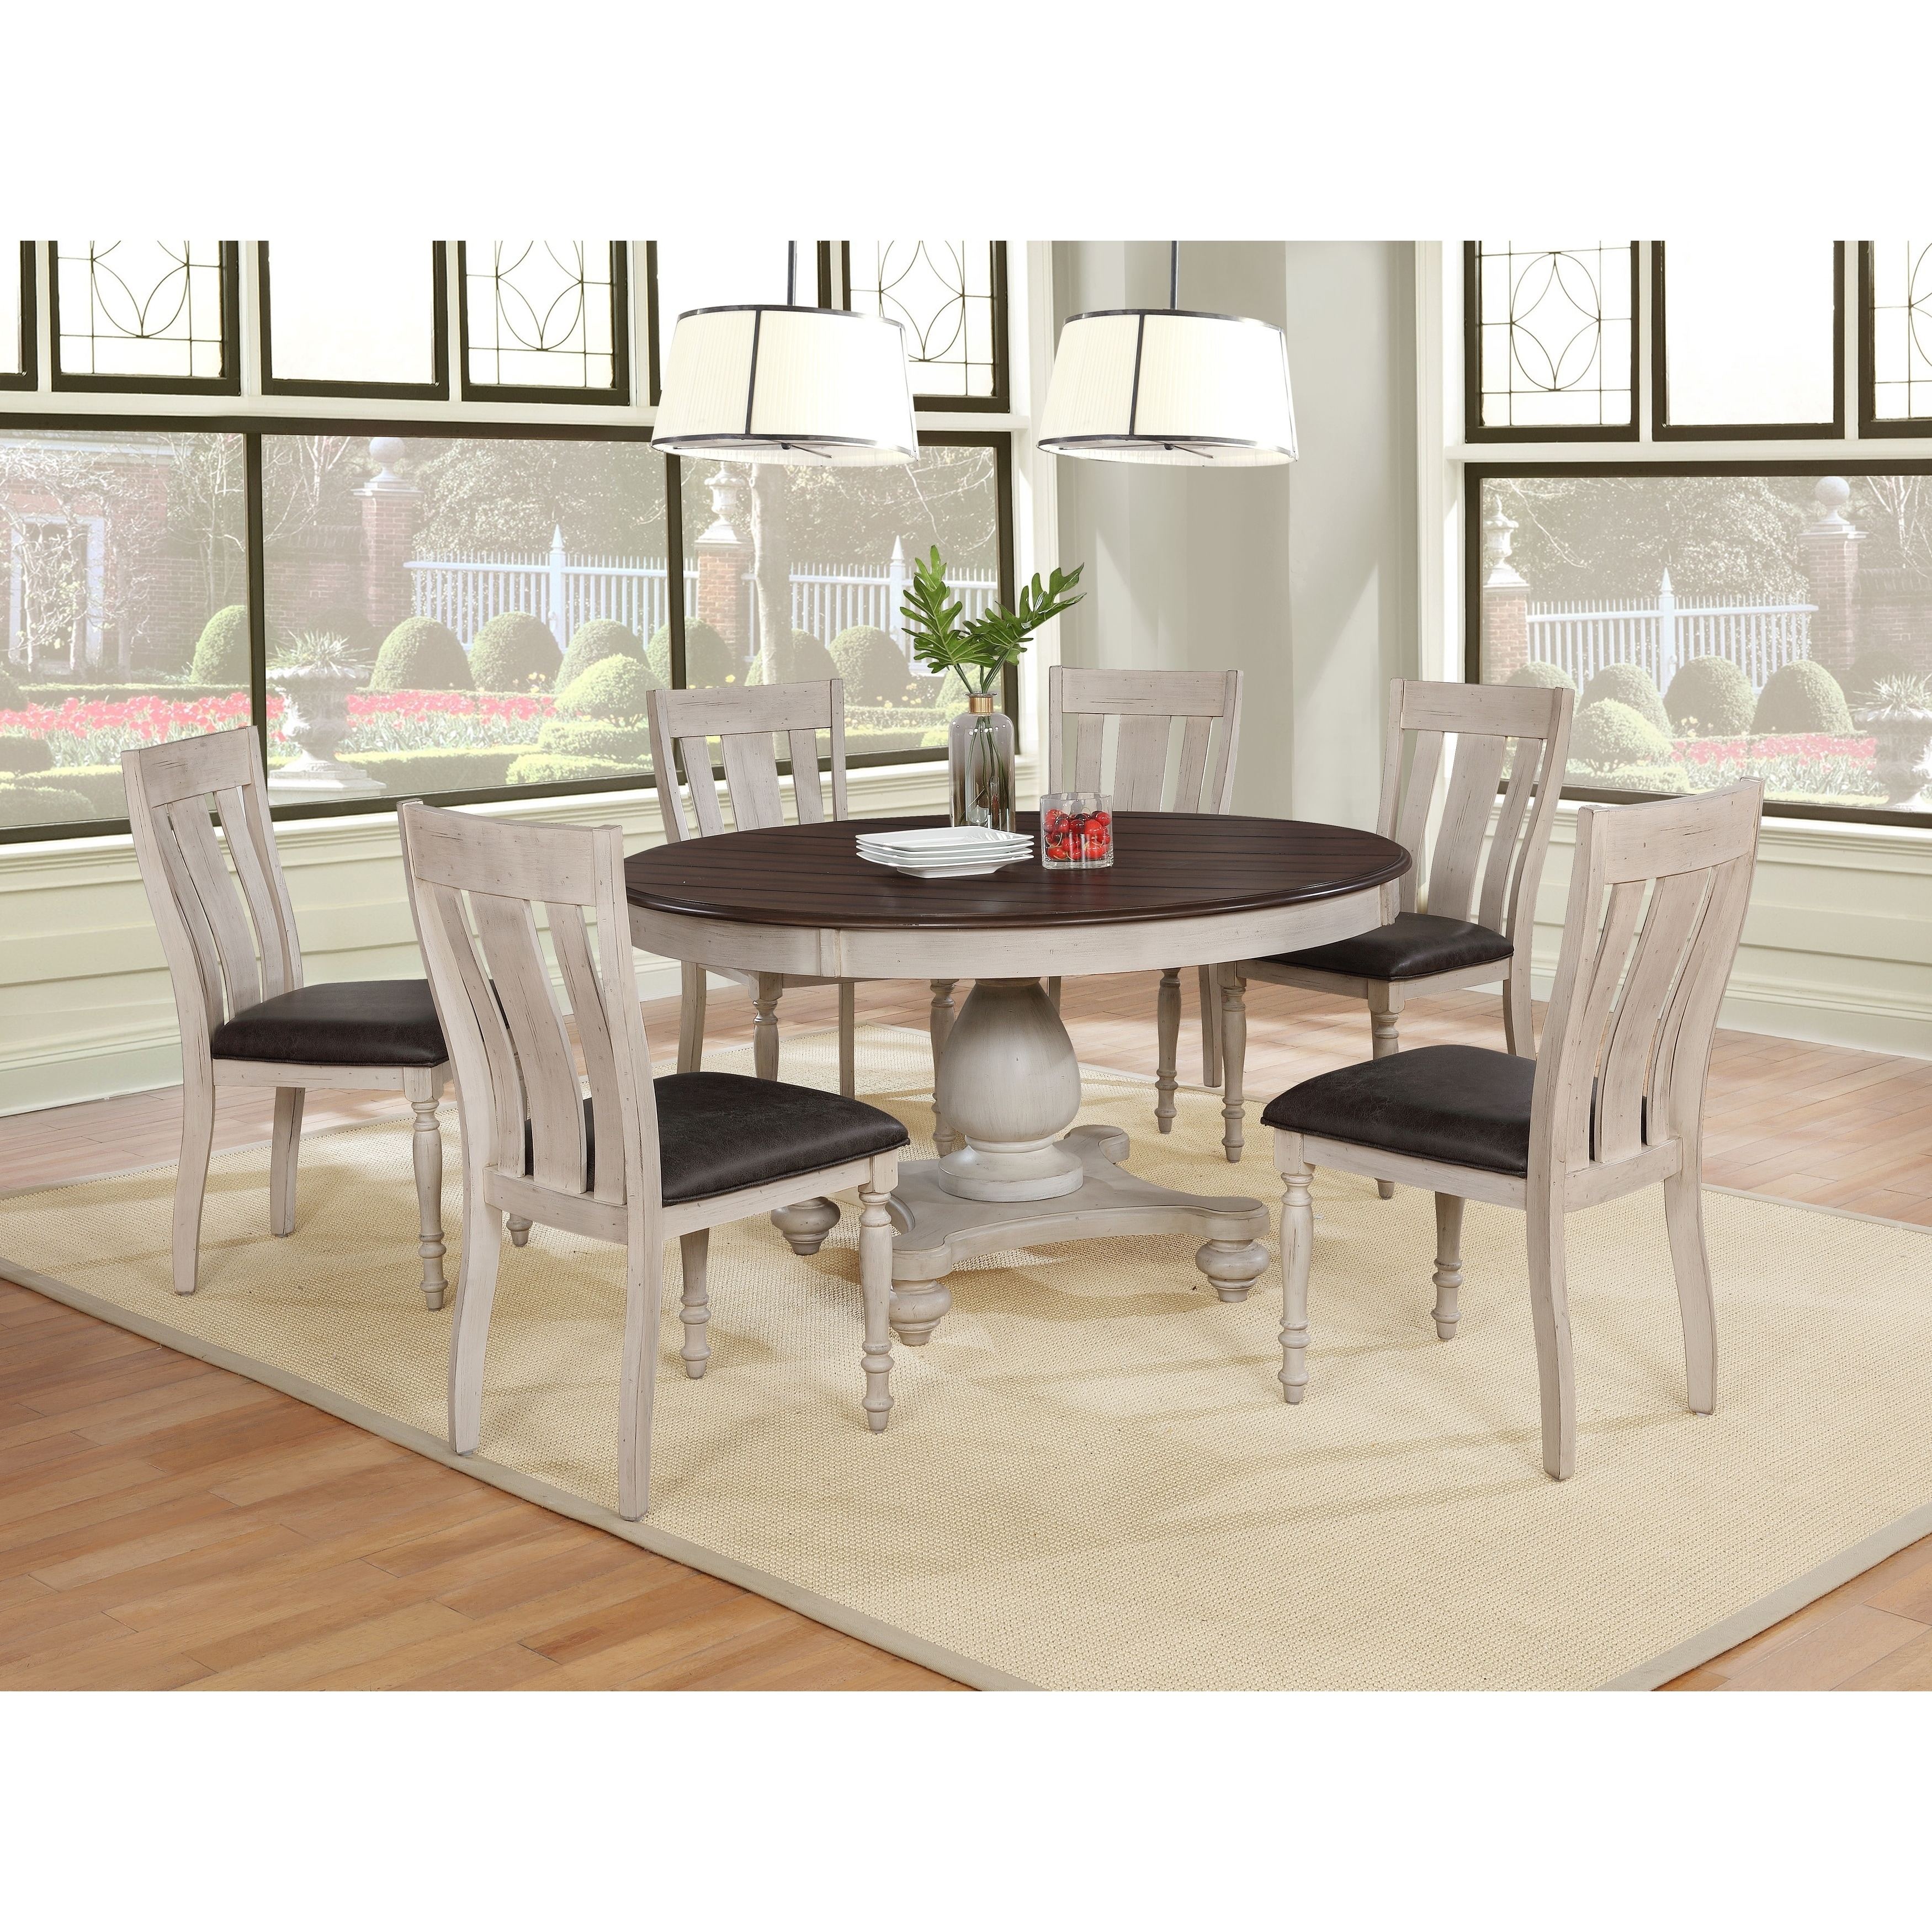 Arch Weathered Oak Dining Set Round Table Six Chairs